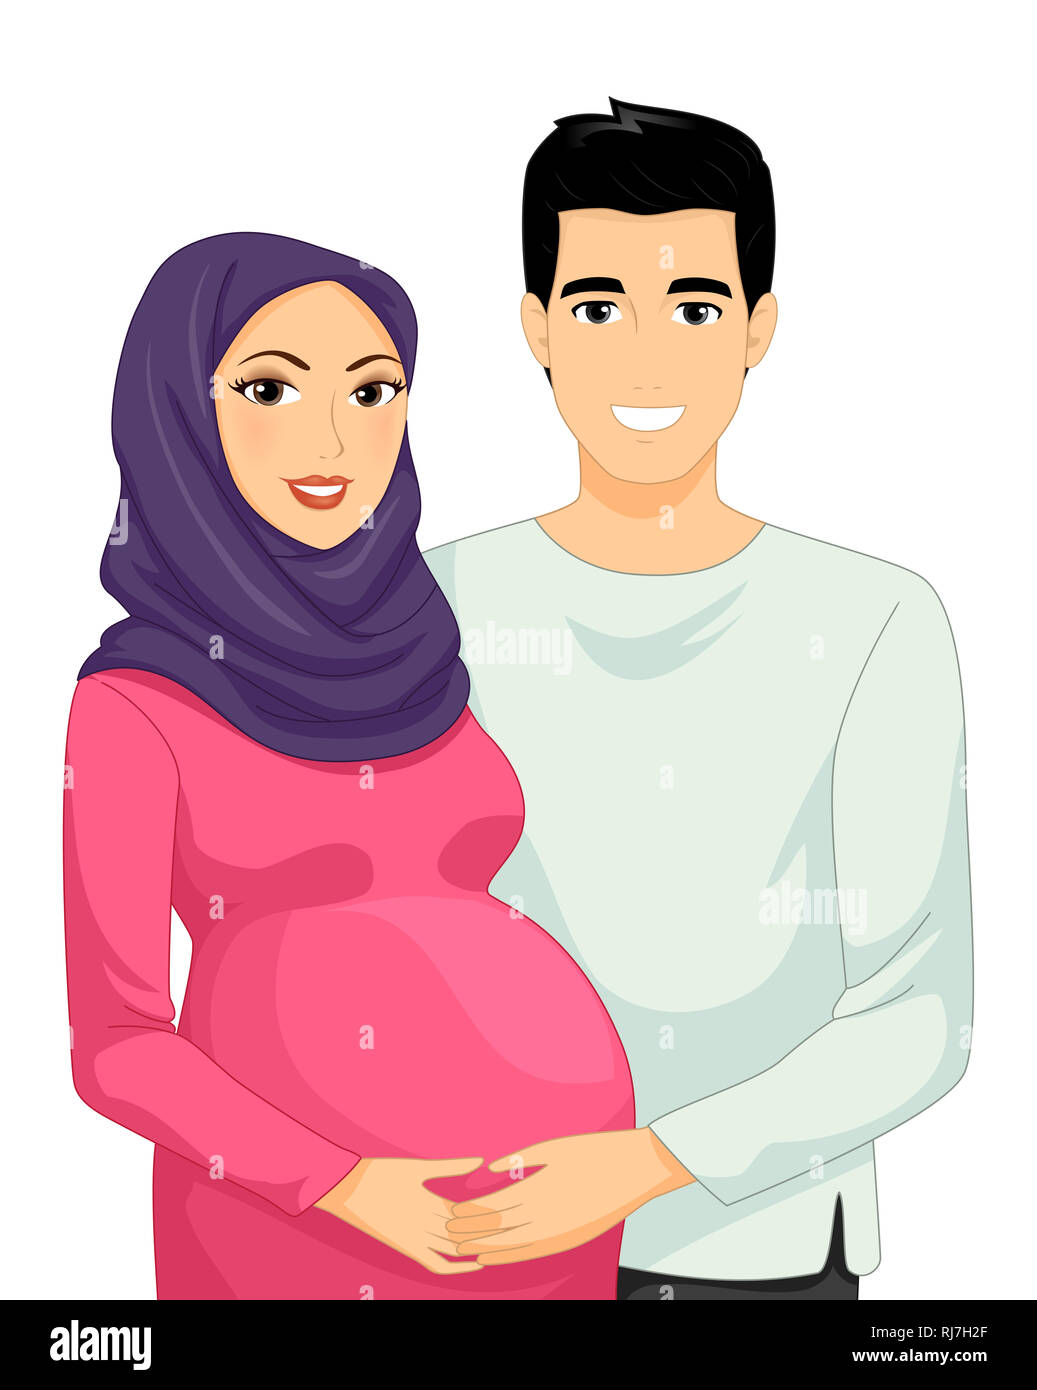 Illustration of a Muslim Pregnant Woman with Her Husband